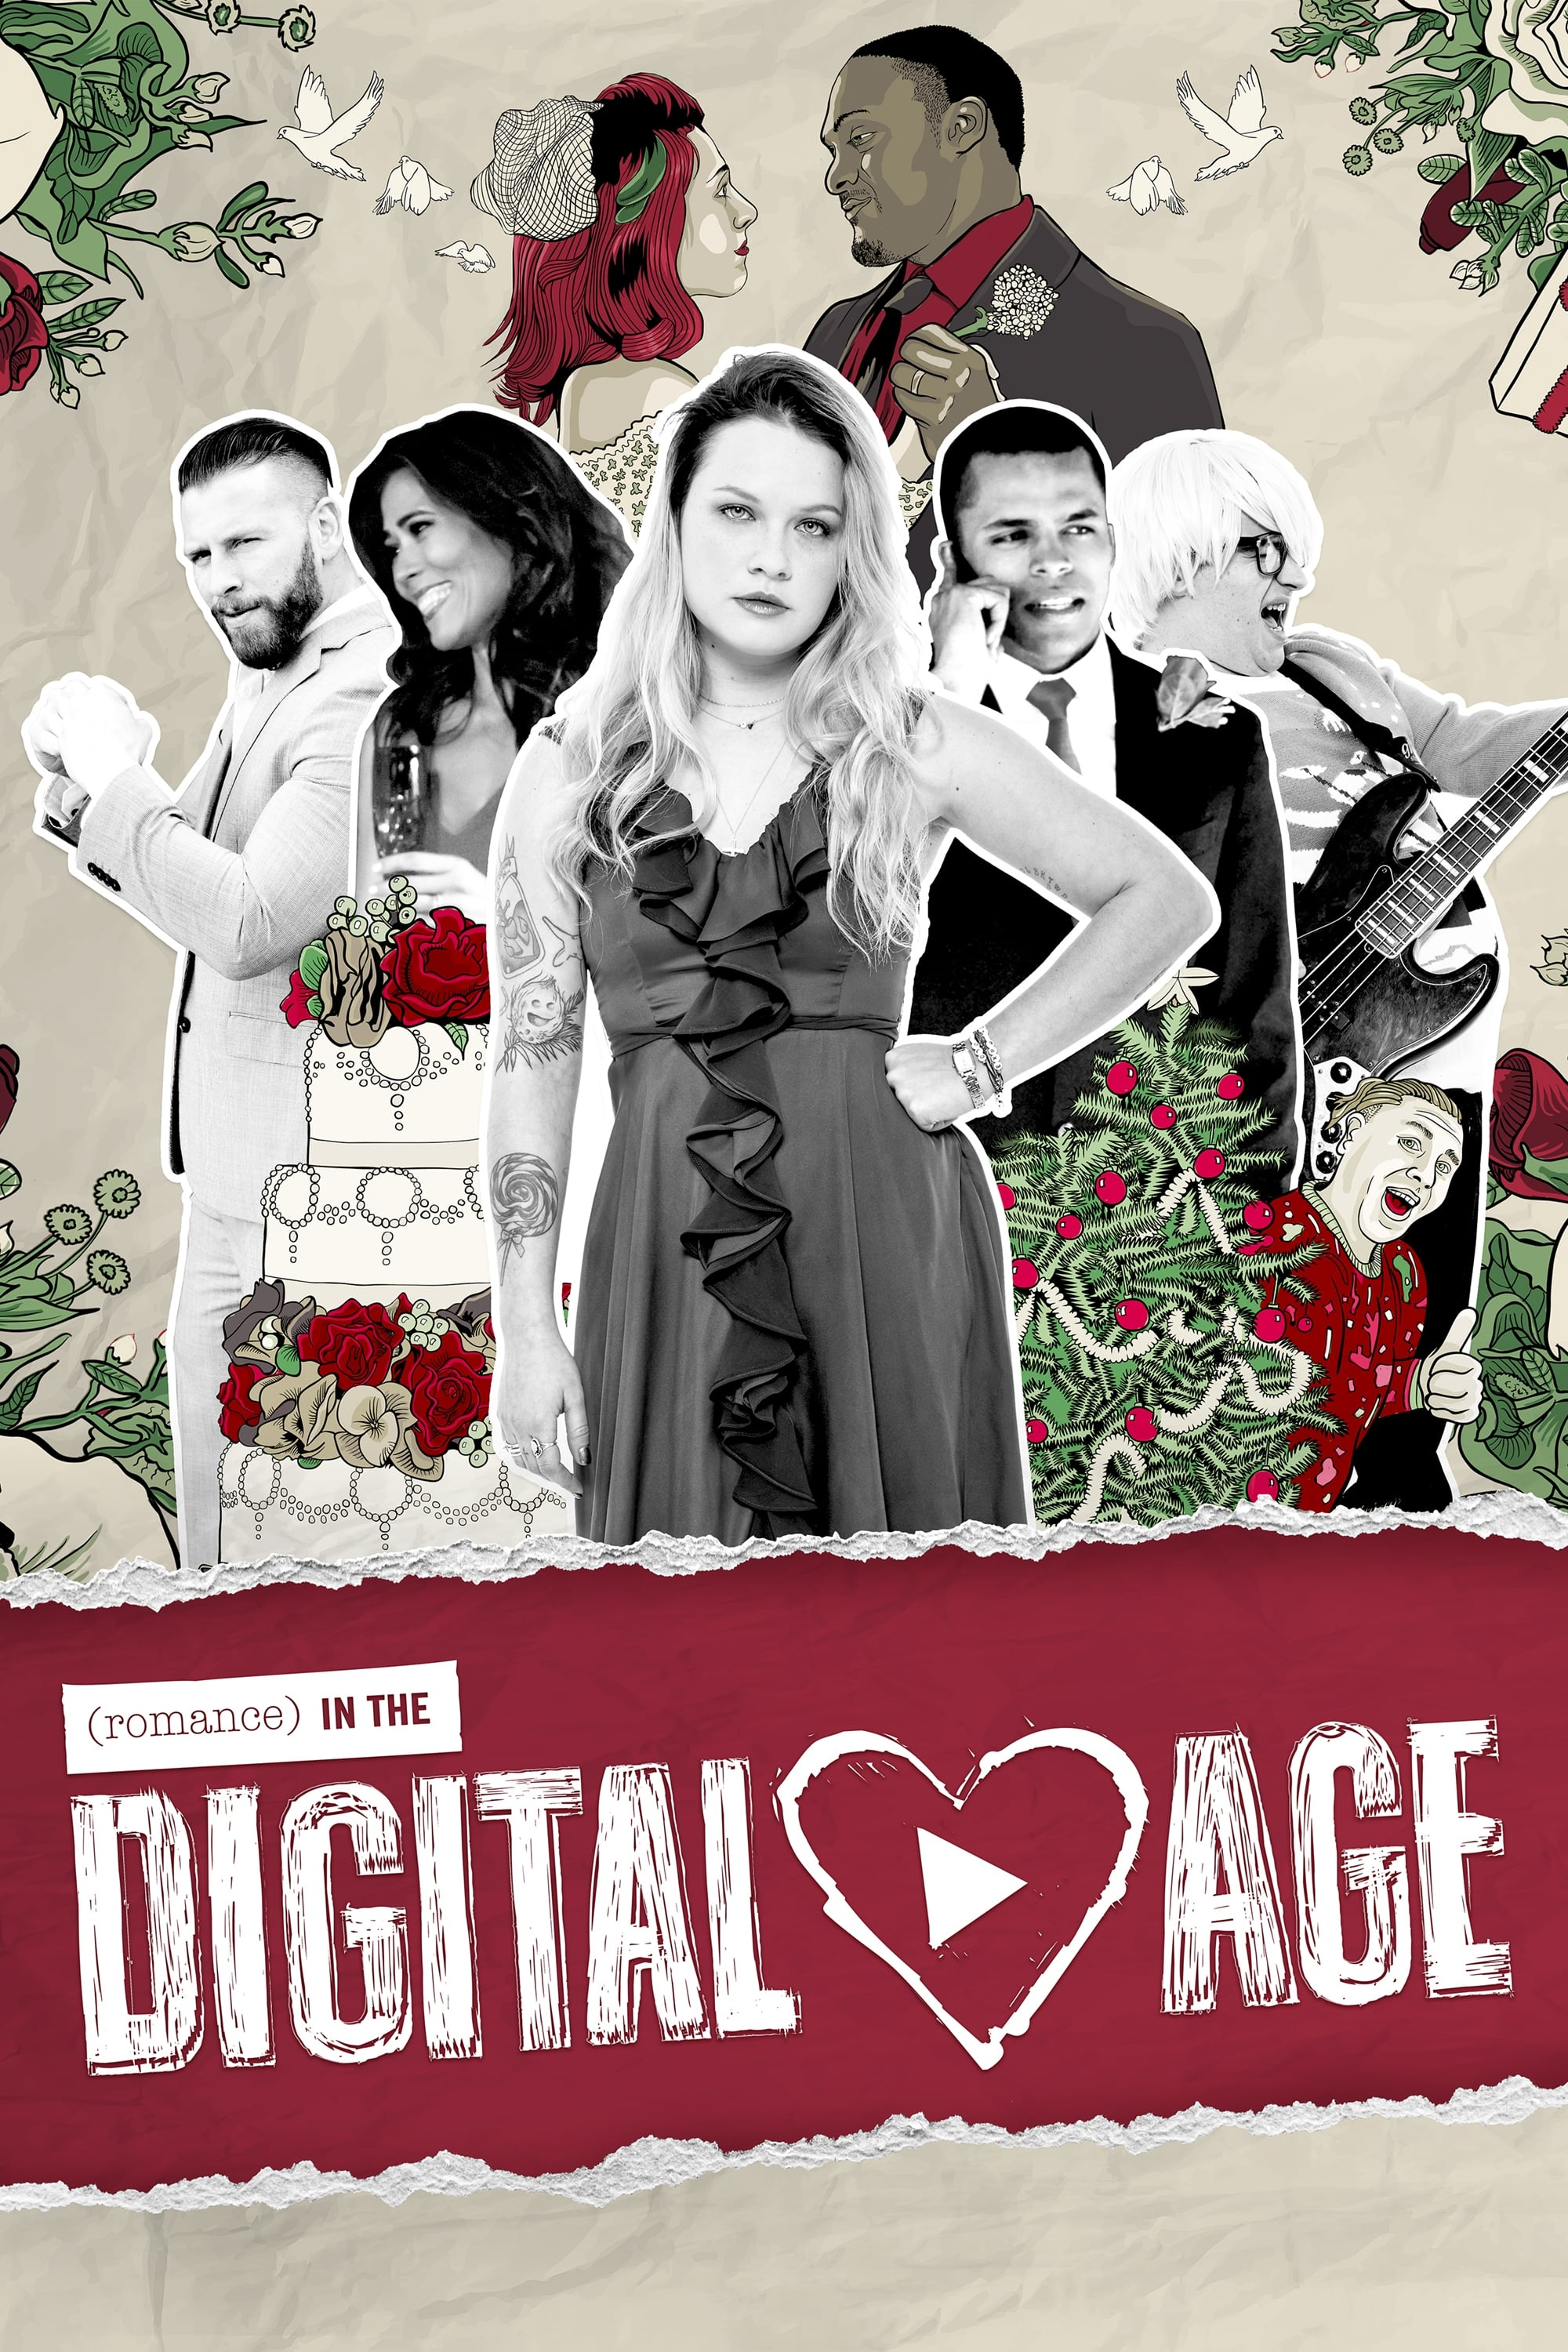 watch (Romance) in the Digital Age 2017 online free